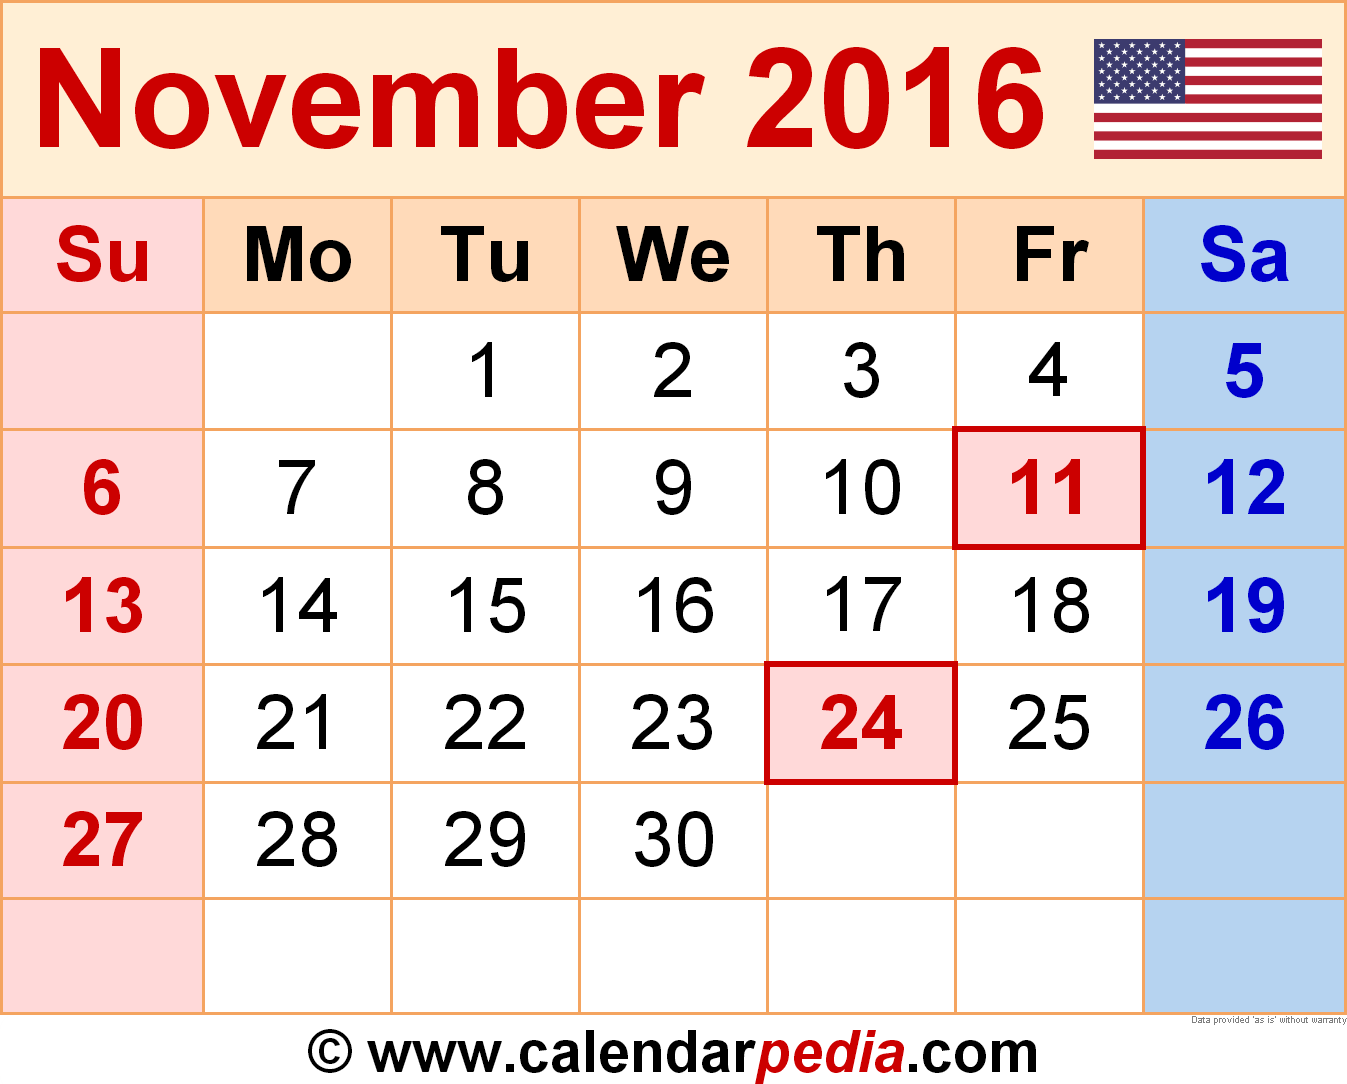 Clipart calendar november 2016 clip art library library November 2016 Calendars for Word, Excel & PDF clip art library library